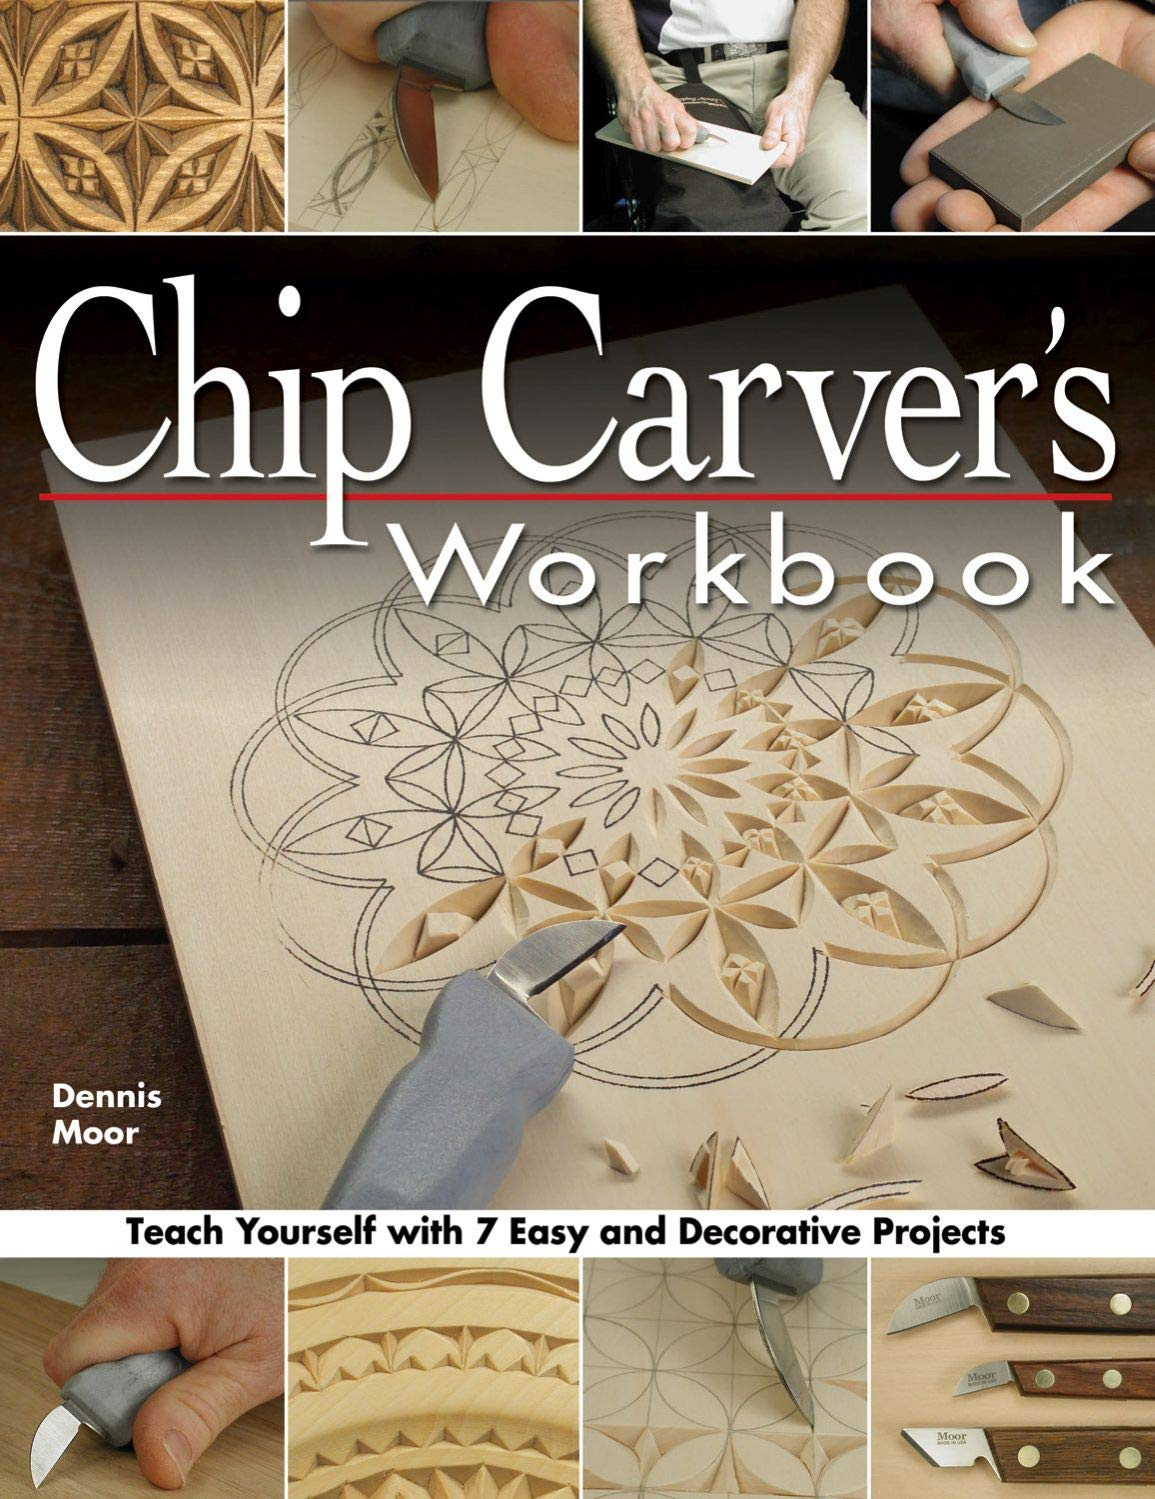 Chip Carver's Workbook: Teach Yourself with 7 Easy & Decorative Projects  (Fox Chapel Publishing) Learn Step-by-Step: Tools, Techniques, Lettering,  ...